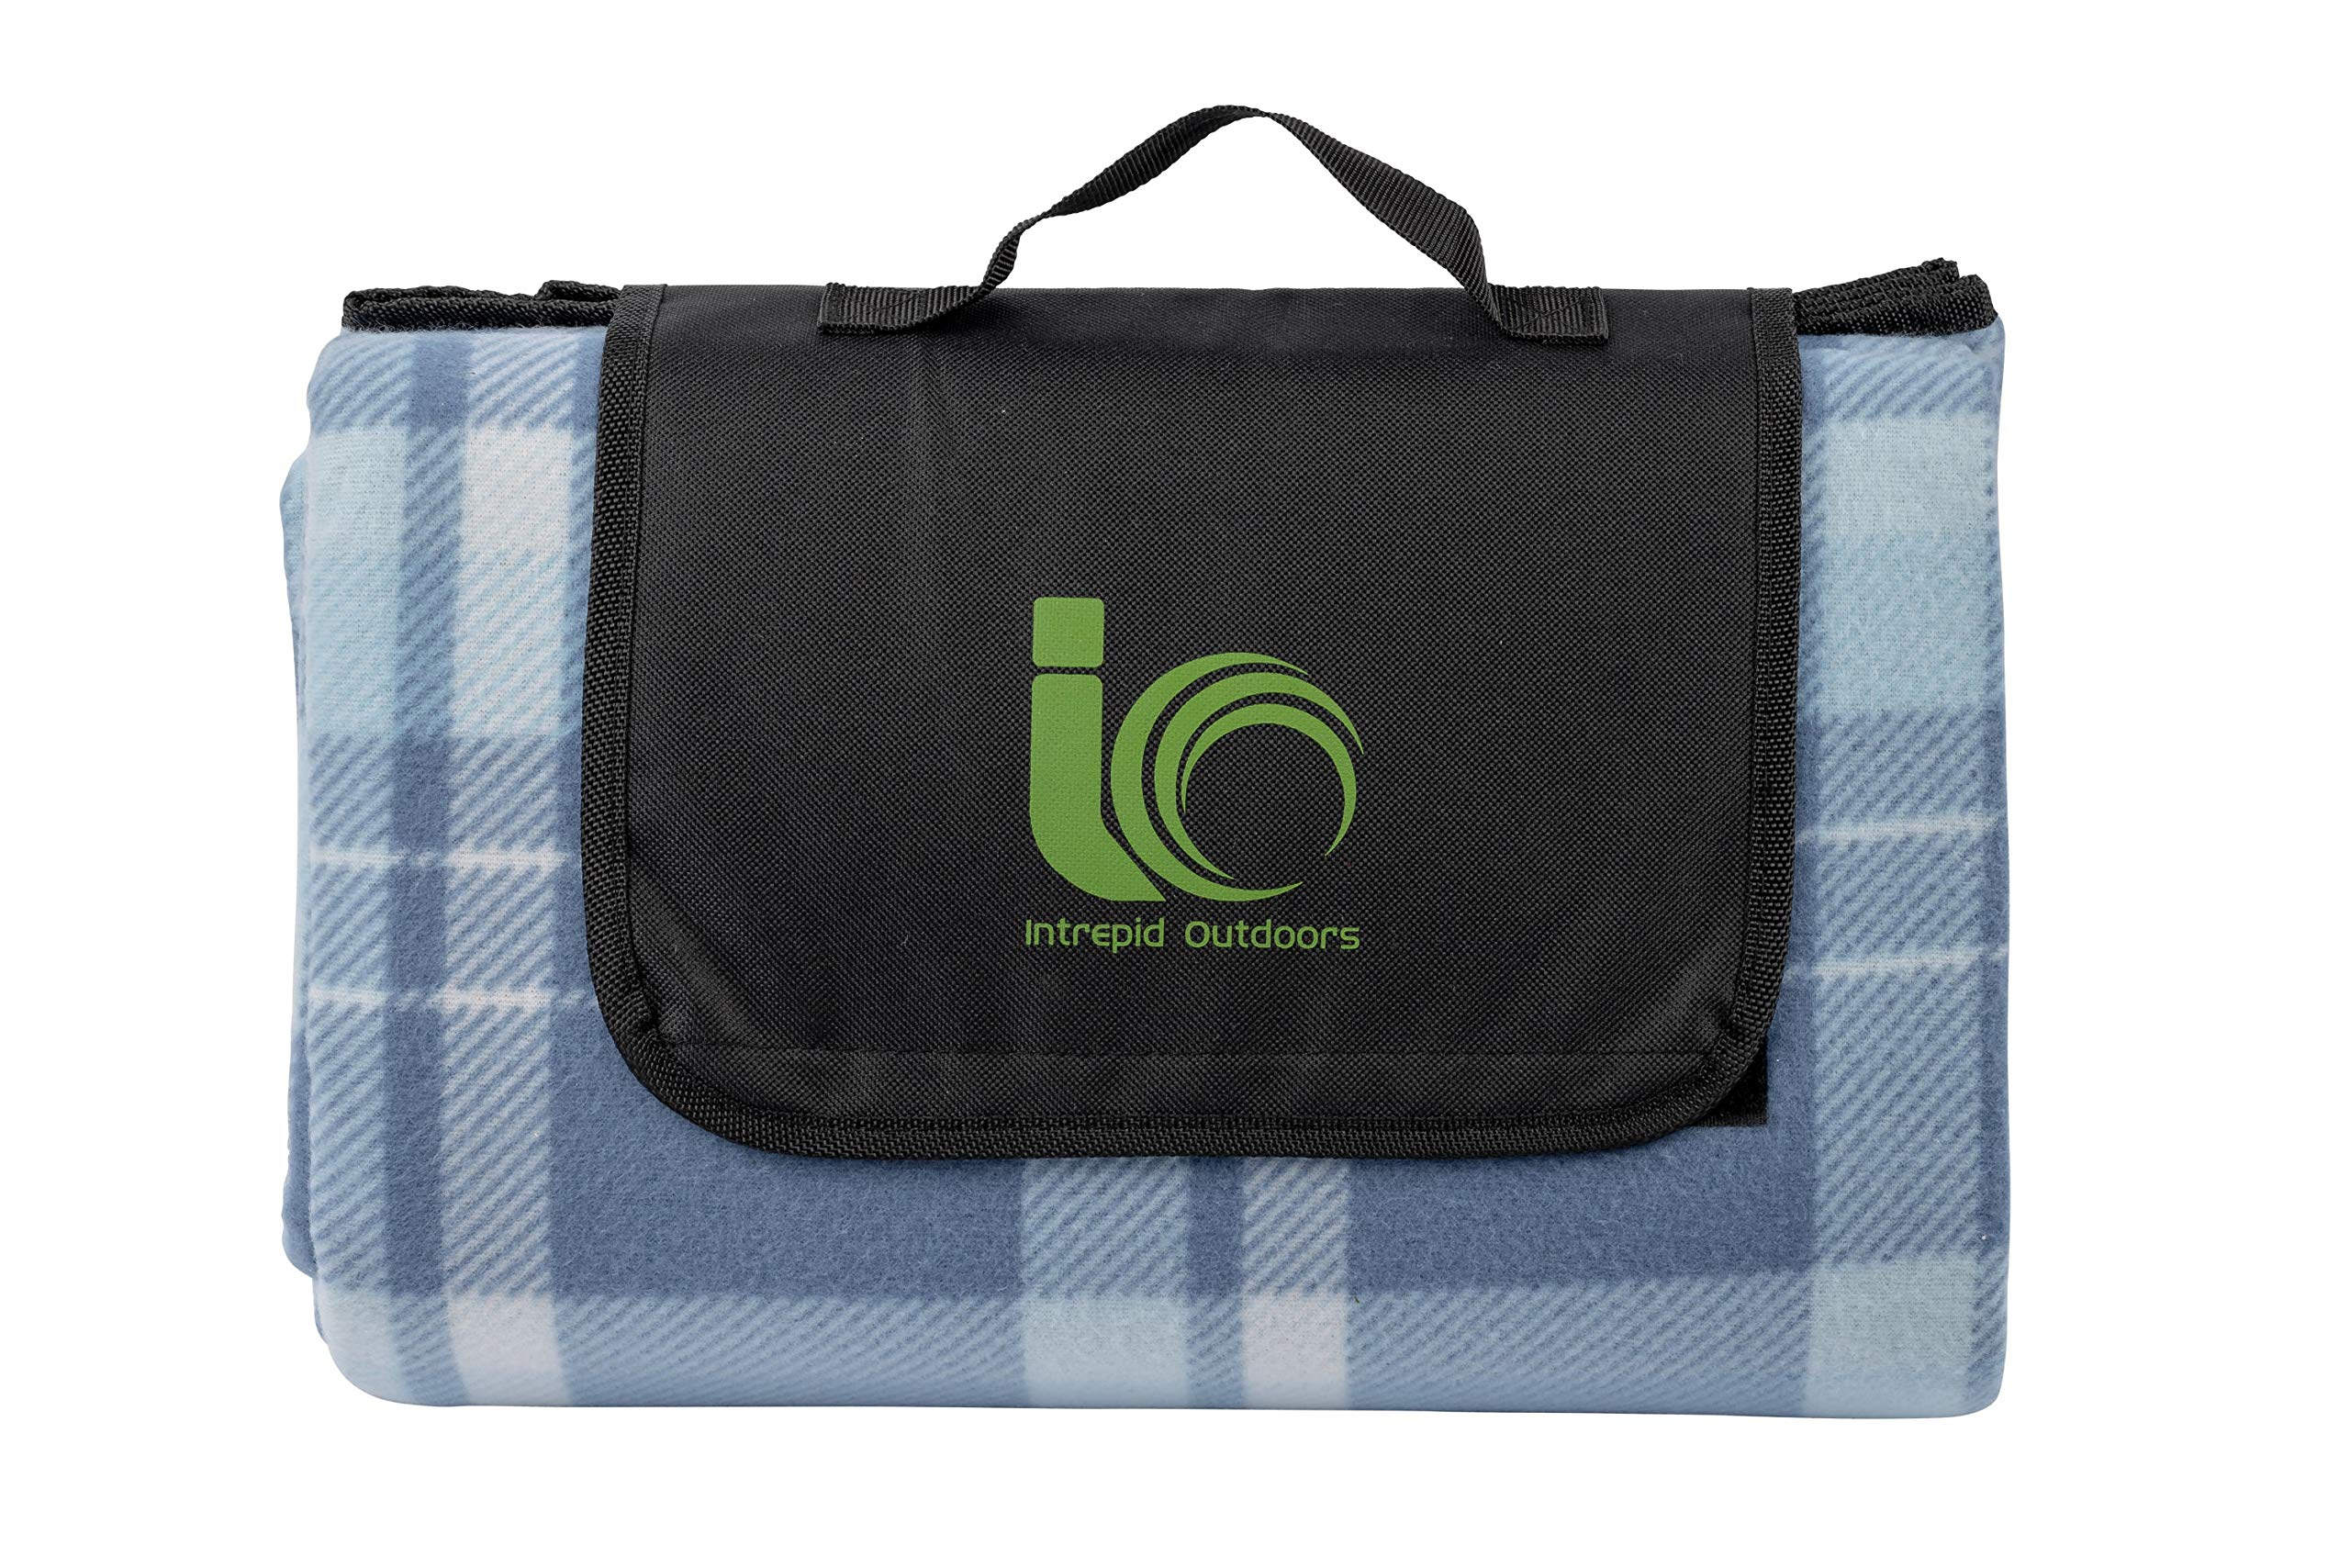 Intrepid Outdoors Waterproof Picnic Blanket - Extra Large Portable Blanket for Beach, Camping, Lawn, Festival, Hiking and Outdoors. by Intrepid Outdoors